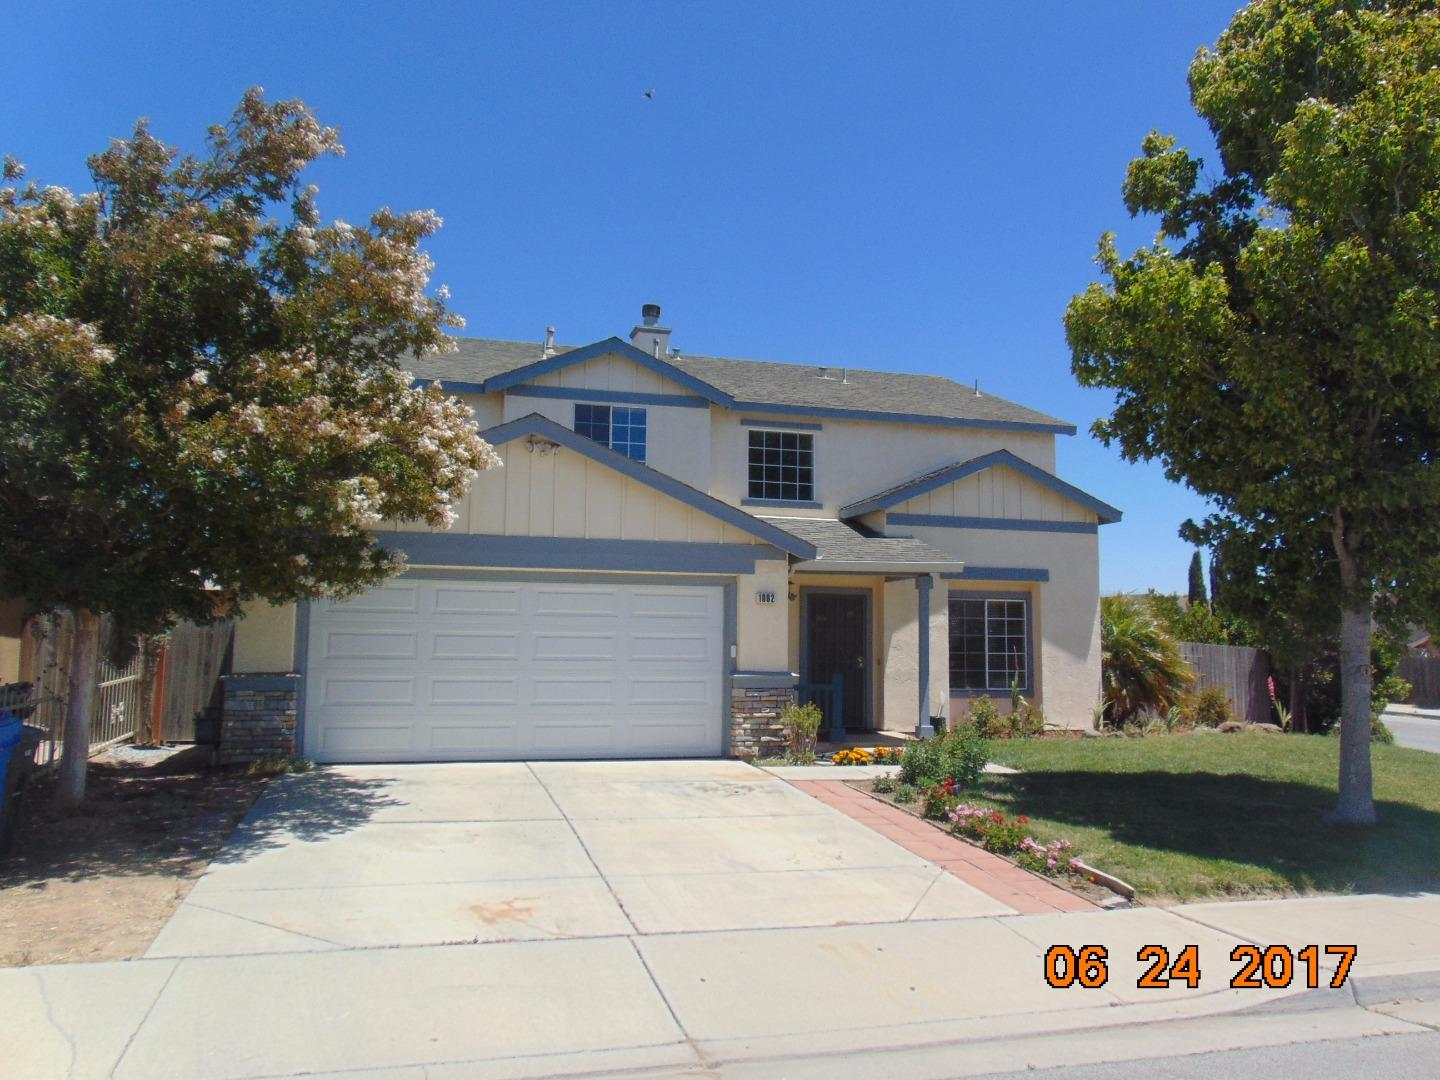 Single Family Home for Sale at 1002 Prado Drive Soledad, California 93960 United States